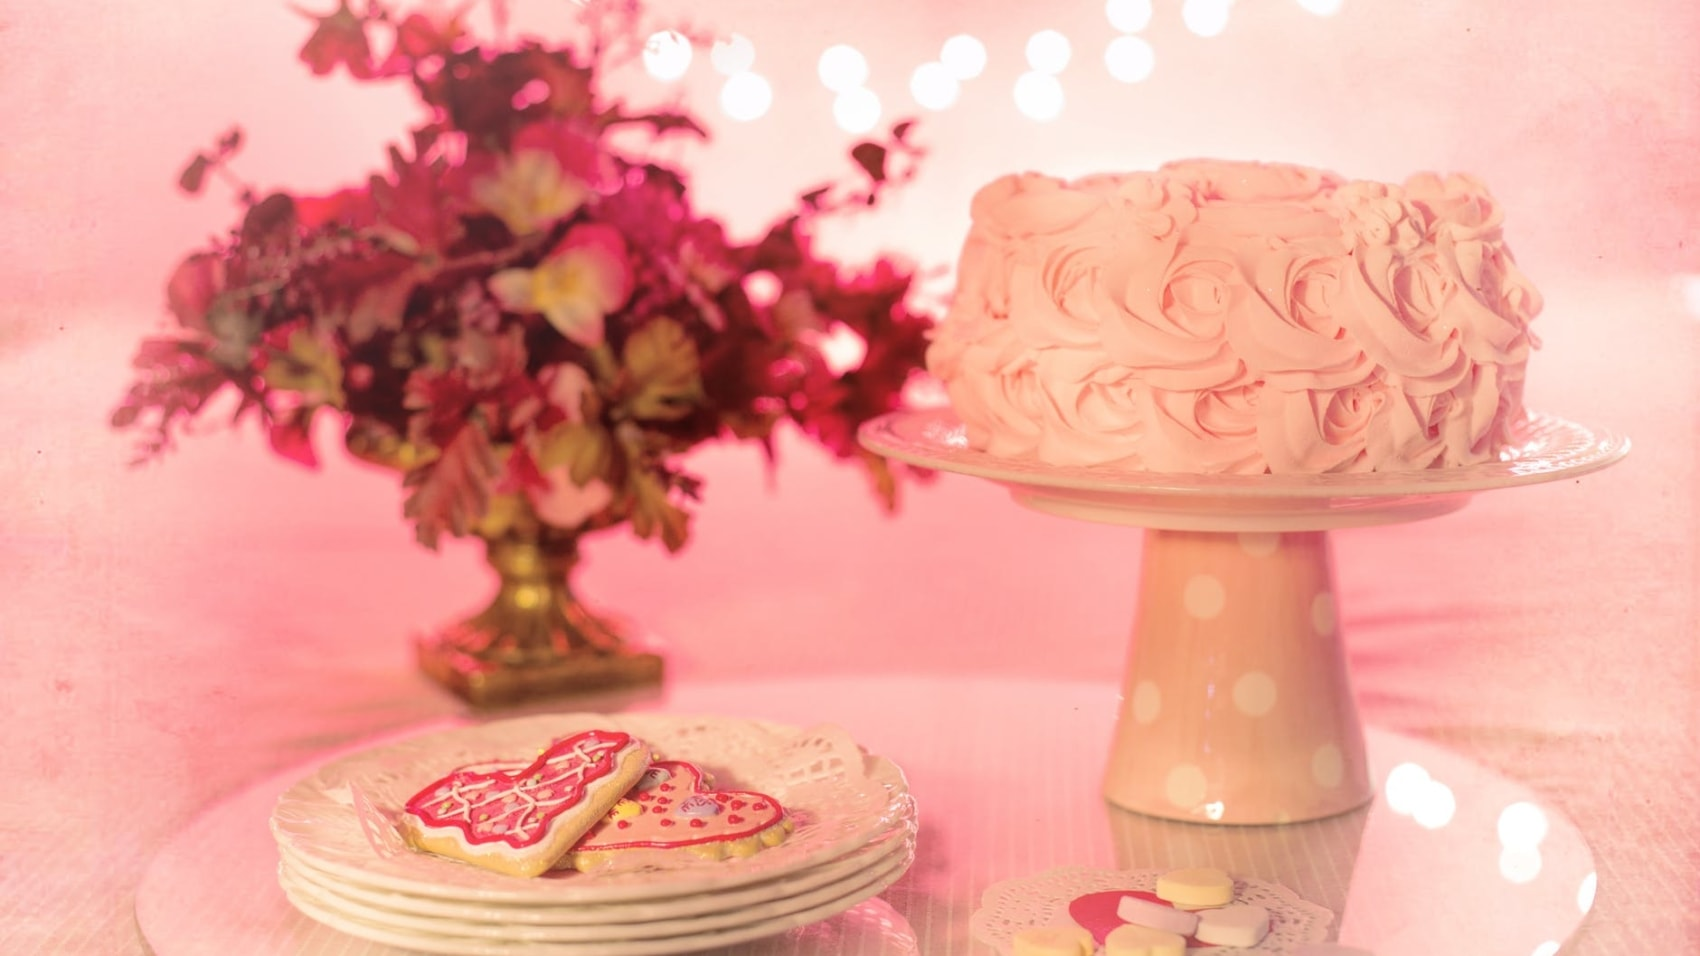 Valentines Need Not Be a Lavish Celebration to Be Meaningful